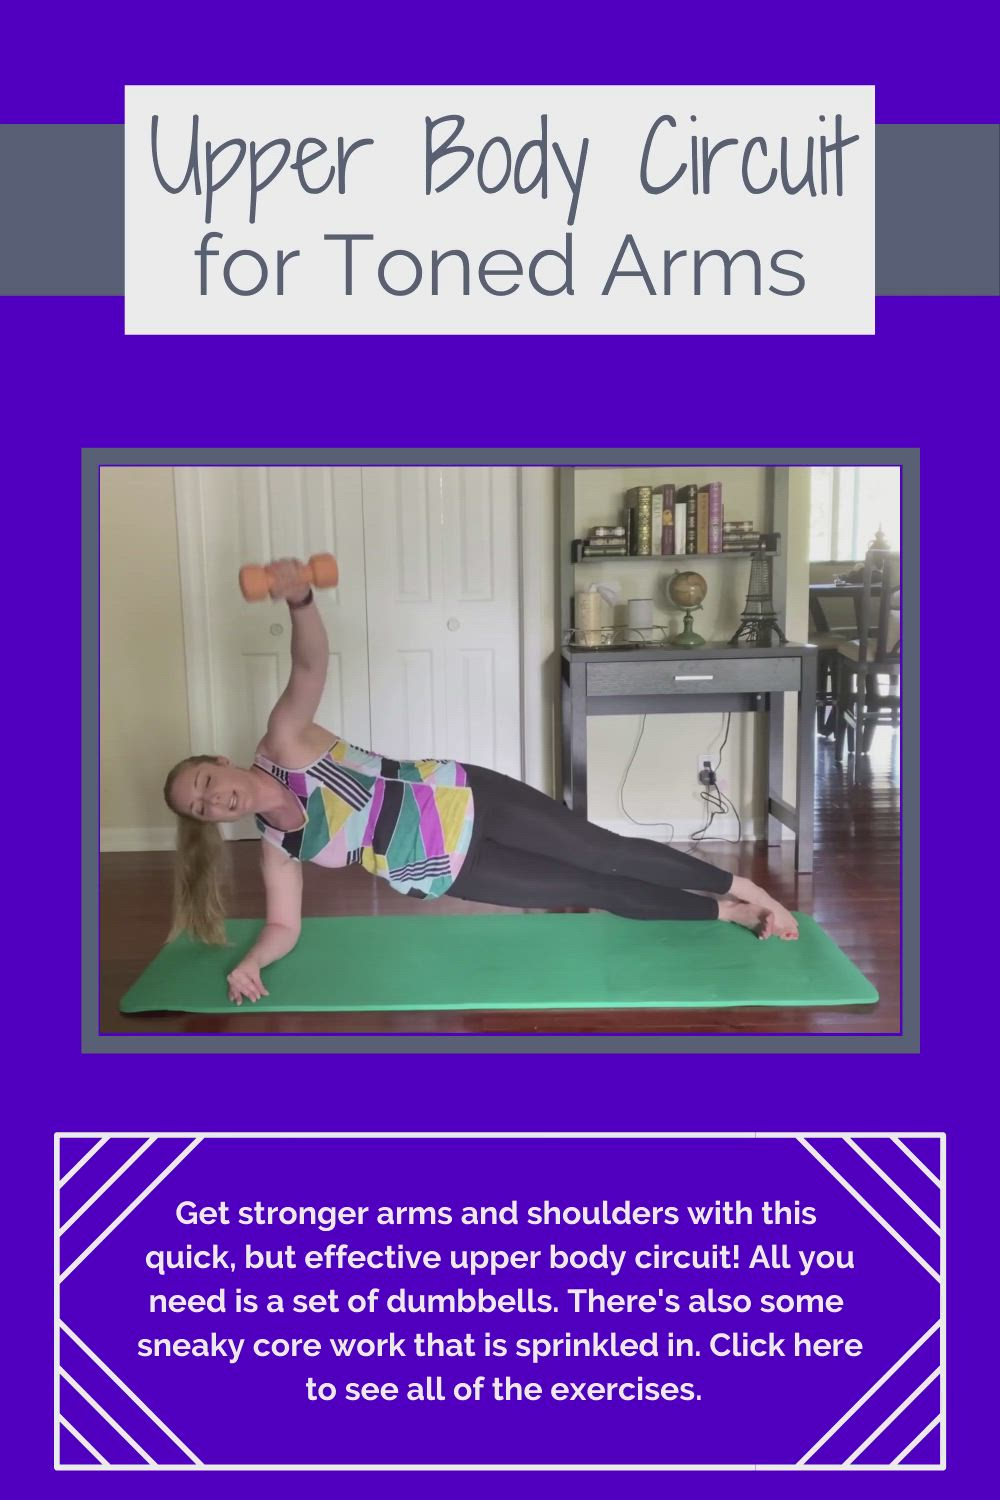 Perinatal Safe Arm And Shoulders Workout Video Upper Body Workout Shoulder Workout Upper Body Circuit